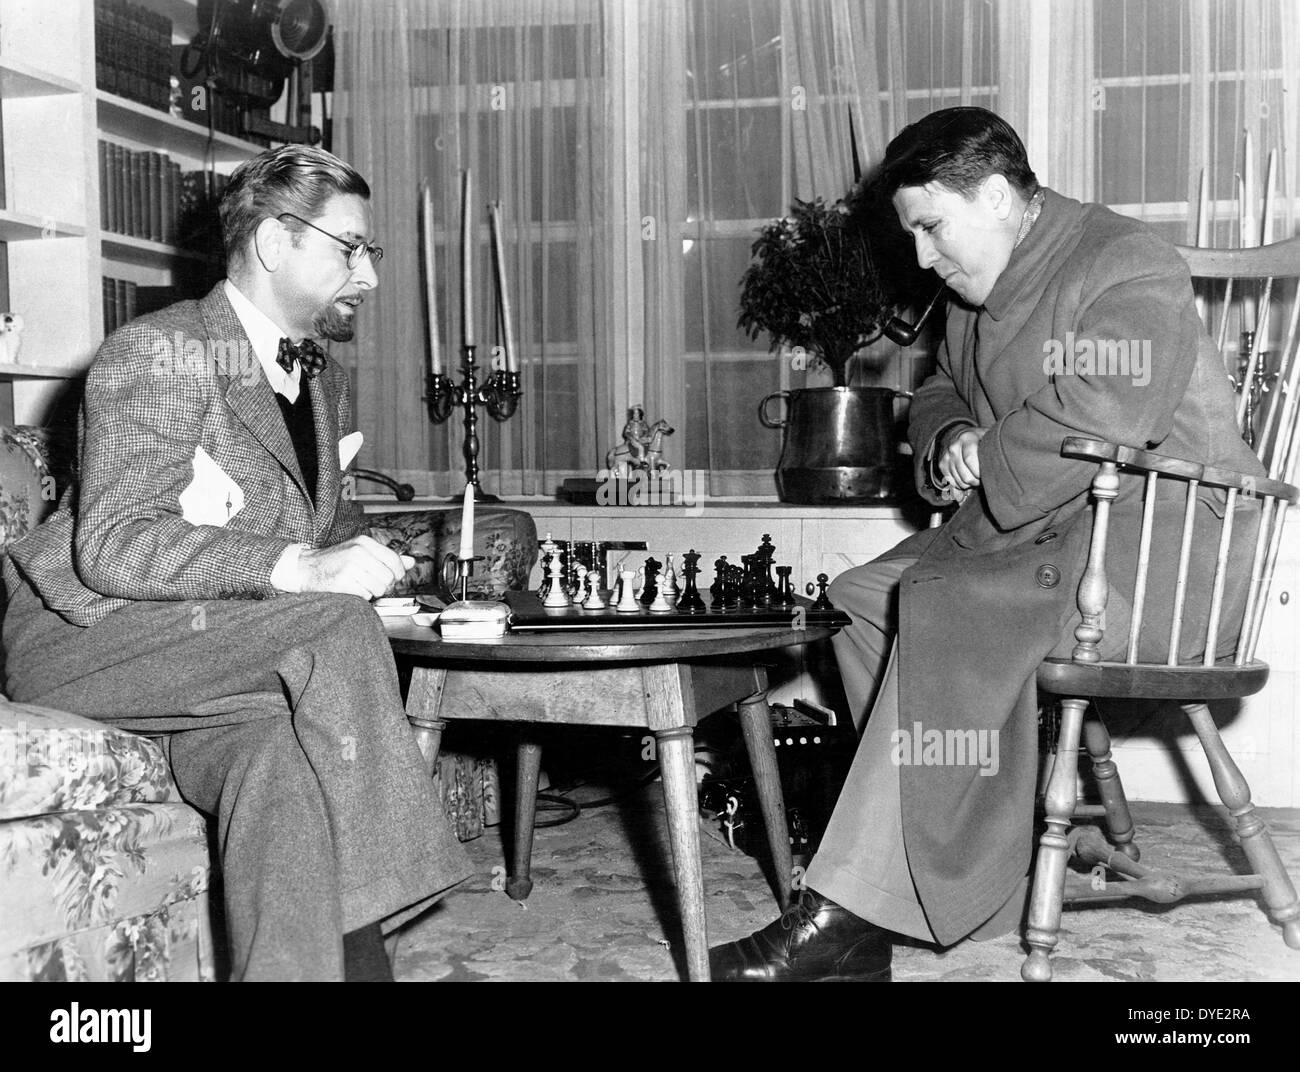 Ronald Colman & Director George Stevens on-set of the Film, 'The Talk of the Town', 1942 - Stock Image